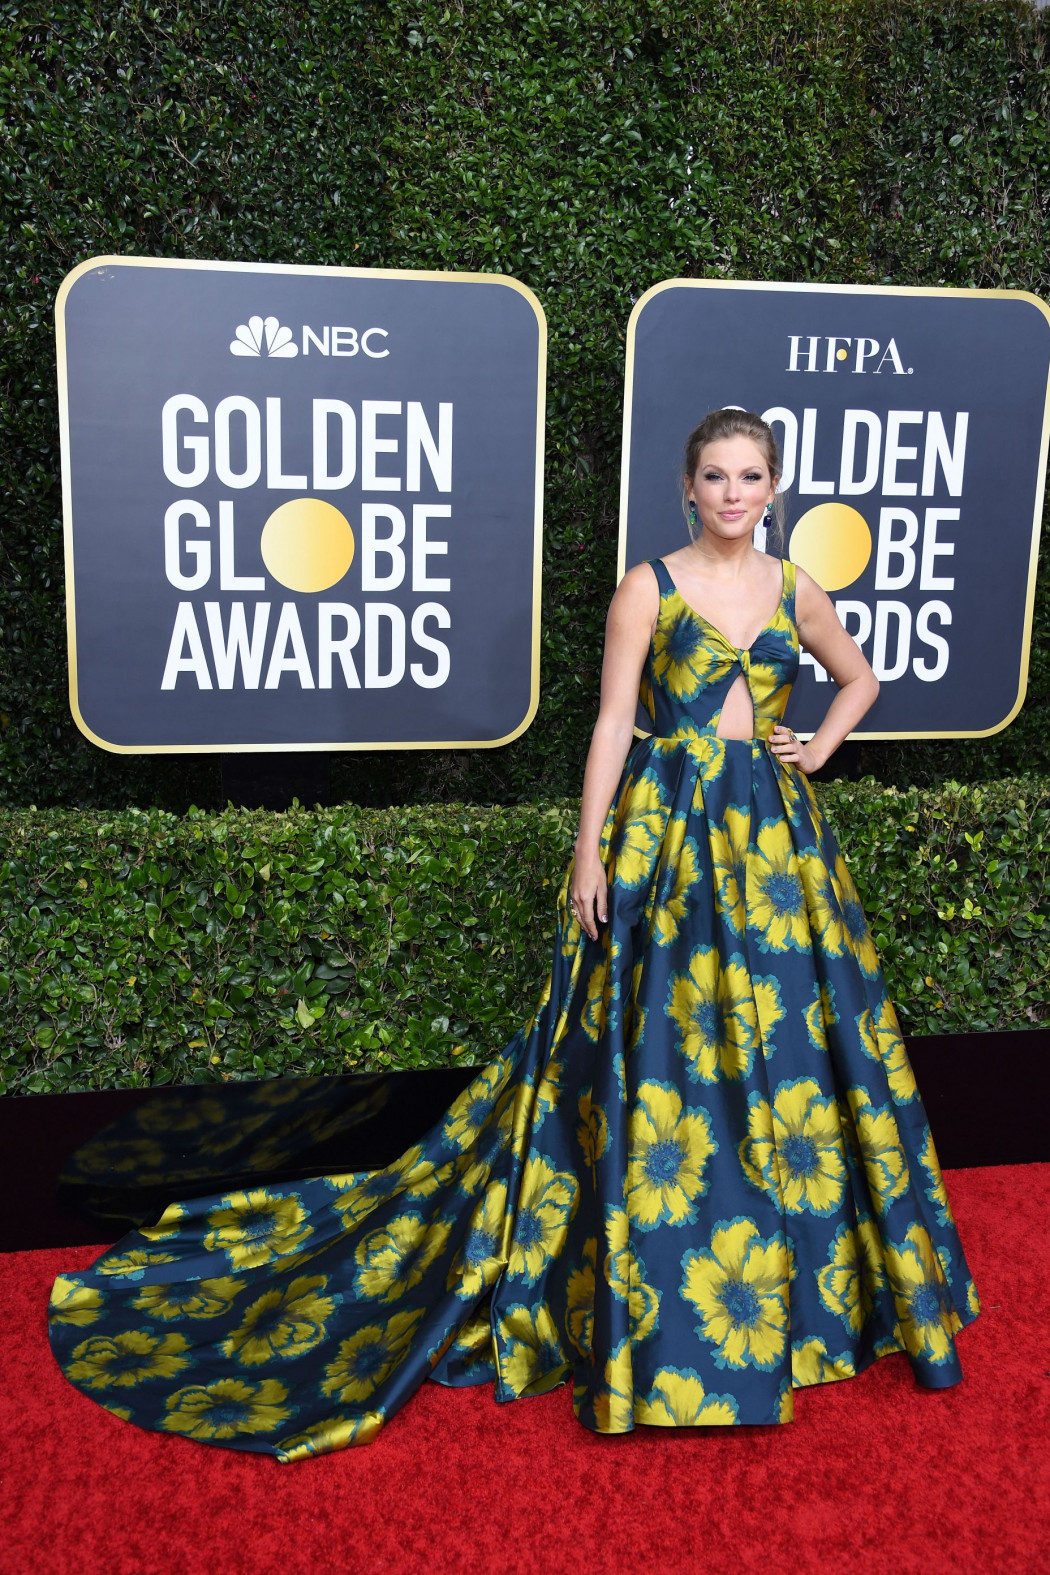 Golden Globes 2020 : les plus beaux looks du tapis rouge - 29